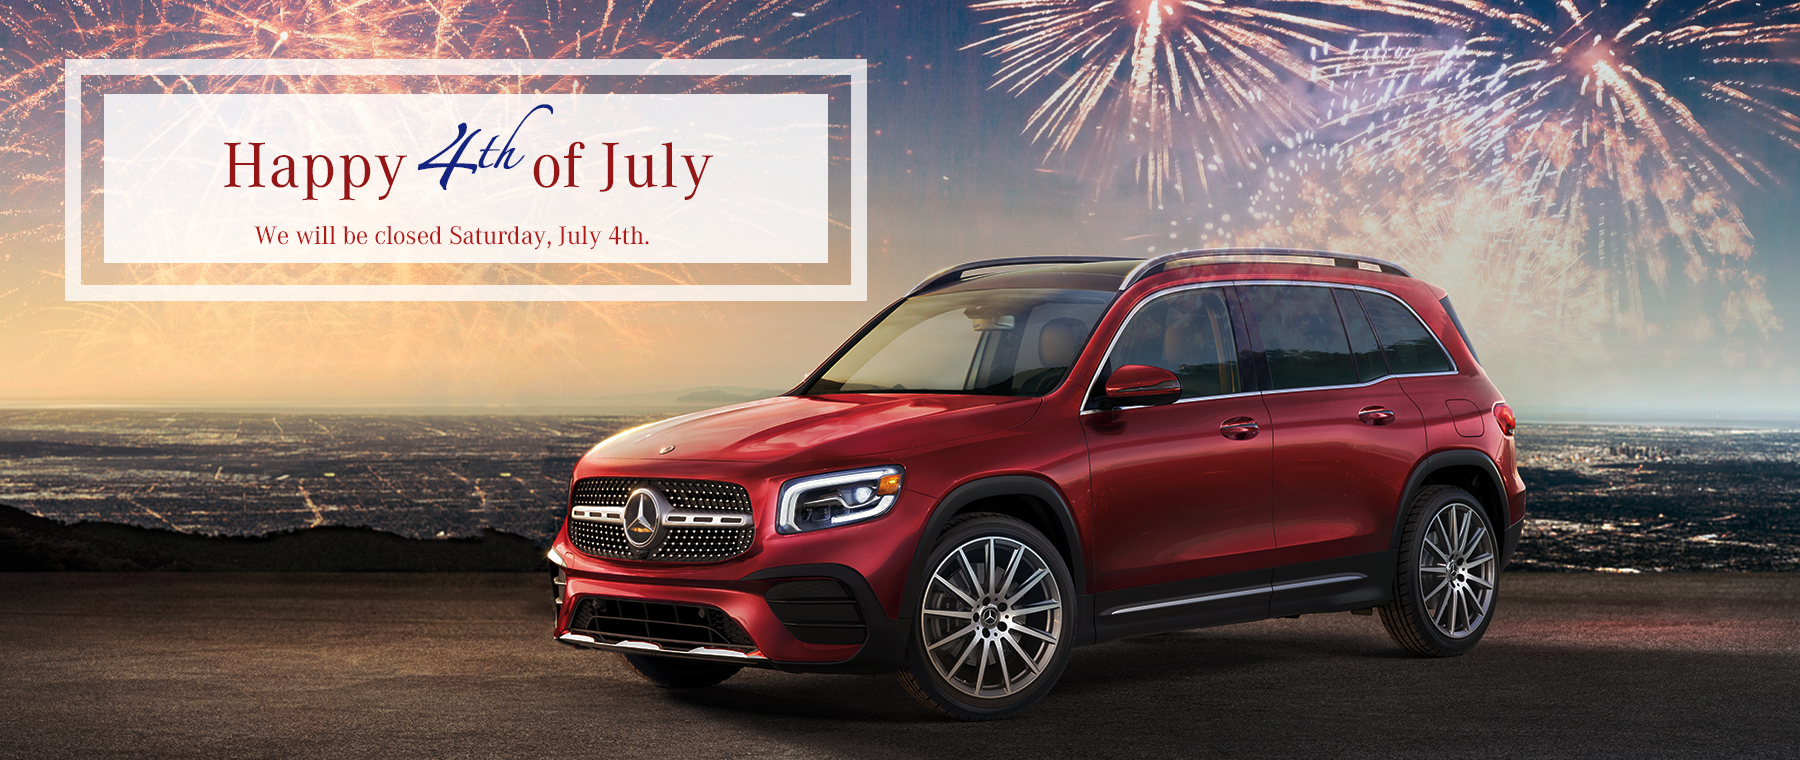 Mercedes-Benz 4th of July